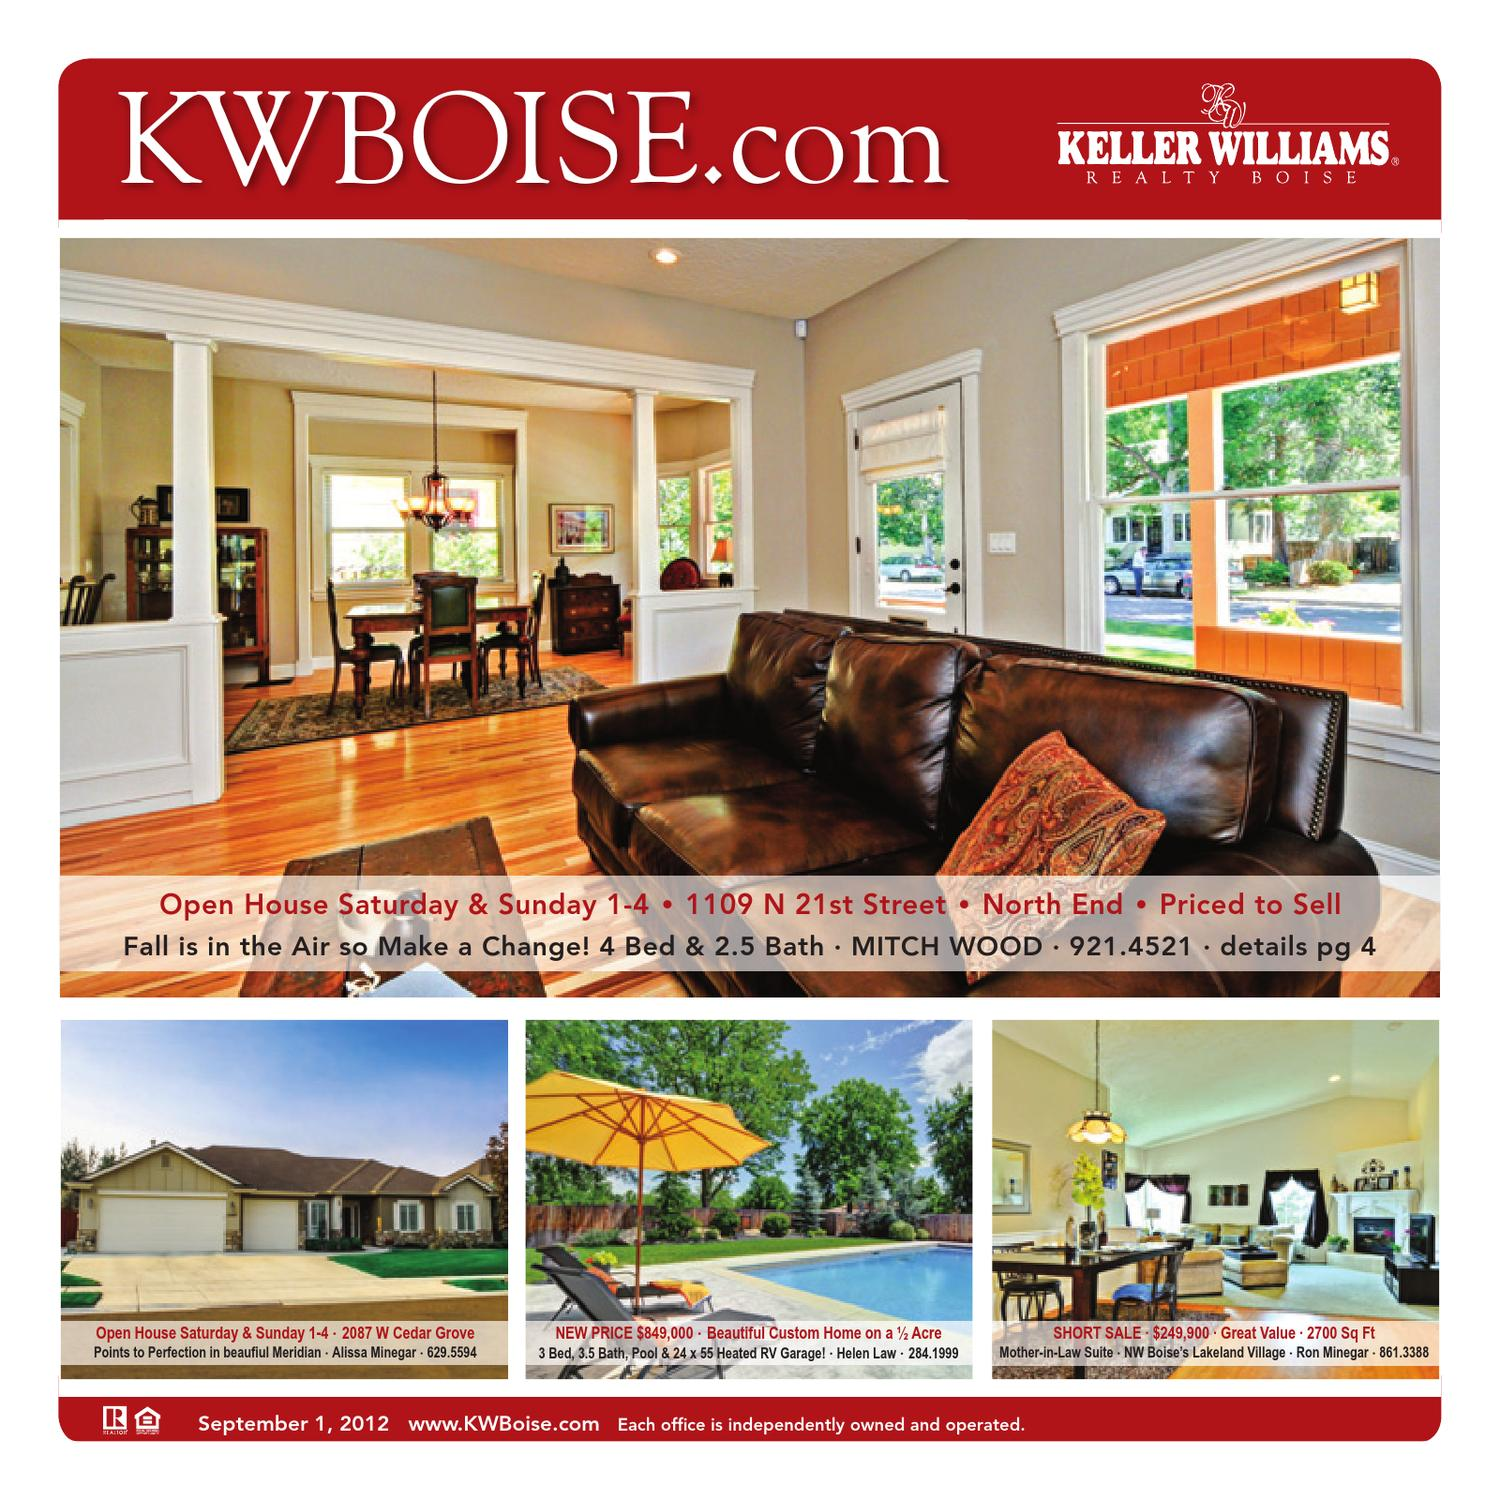 Keller Williams Realty Real Estate - 09/01/12 by Idaho ... on house in valencia ca, house plans ranch style home, house plans for a family of 5, house in law suite addition plans, house plans with mother daughter suites, house plans for disabled, house floor plans, house exterior, house plans with detached in law suite, house with basement garage, house plans with courtyard in middle, house above garage, house plans under 600 feet, house plans with apartment suites, house plans with 2 master suites, homes with in-law suites, house with detached garage breezeway, house with center courtyard, house plans with kitchen in back of house,